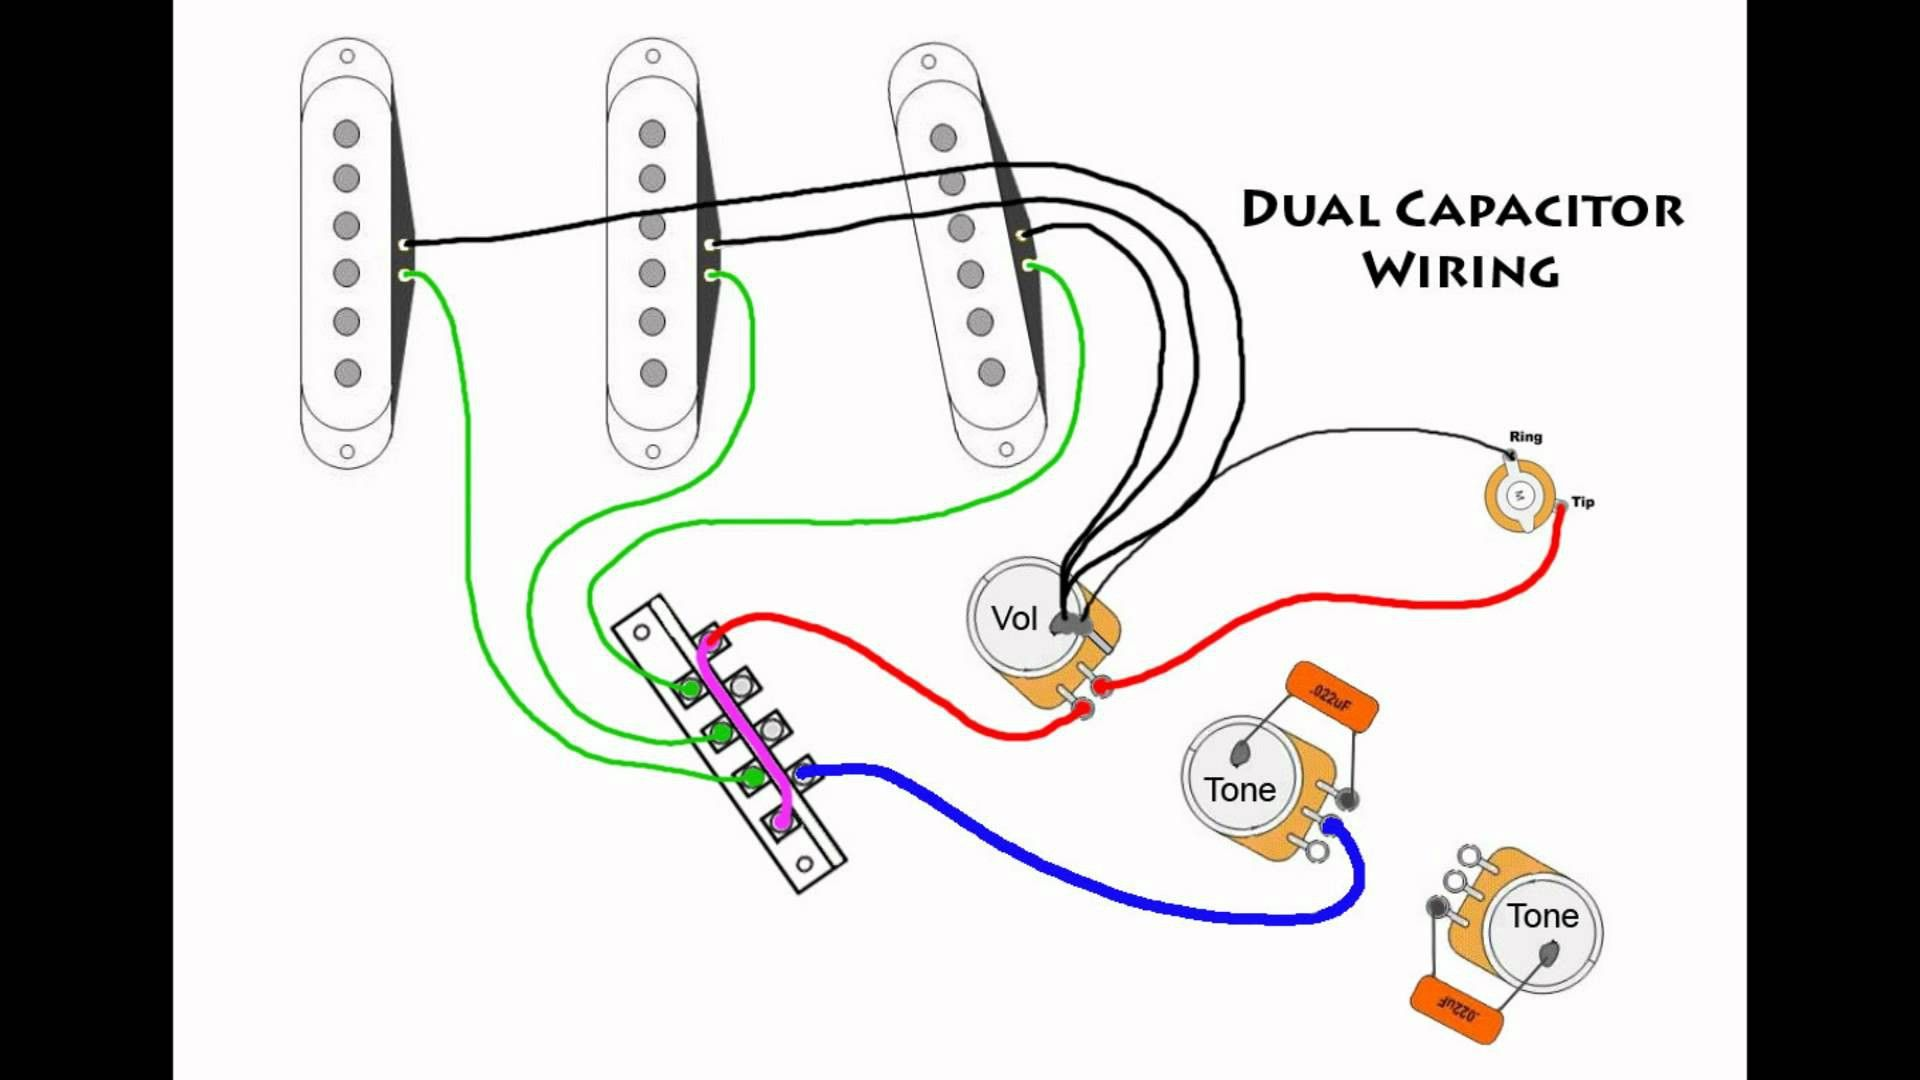 Pin em Wiring diagram Ovation Guitar Wiring Diagram on